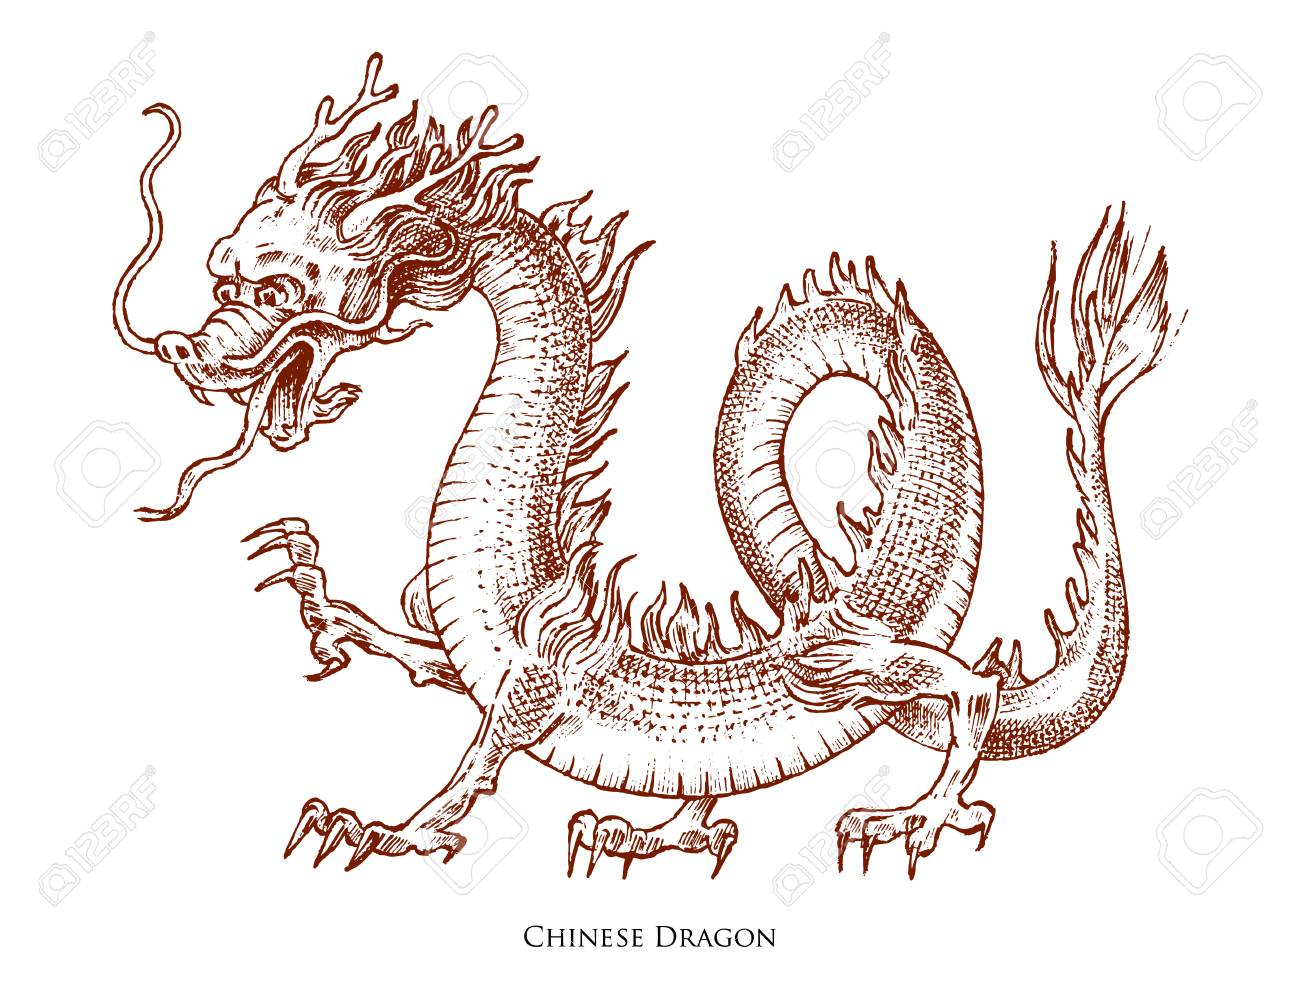 Chinese Dragon Mythological Animal Or Asian Traditional Reptile Royalty Free Cliparts Vectors And Stock Illustration Image 109049001